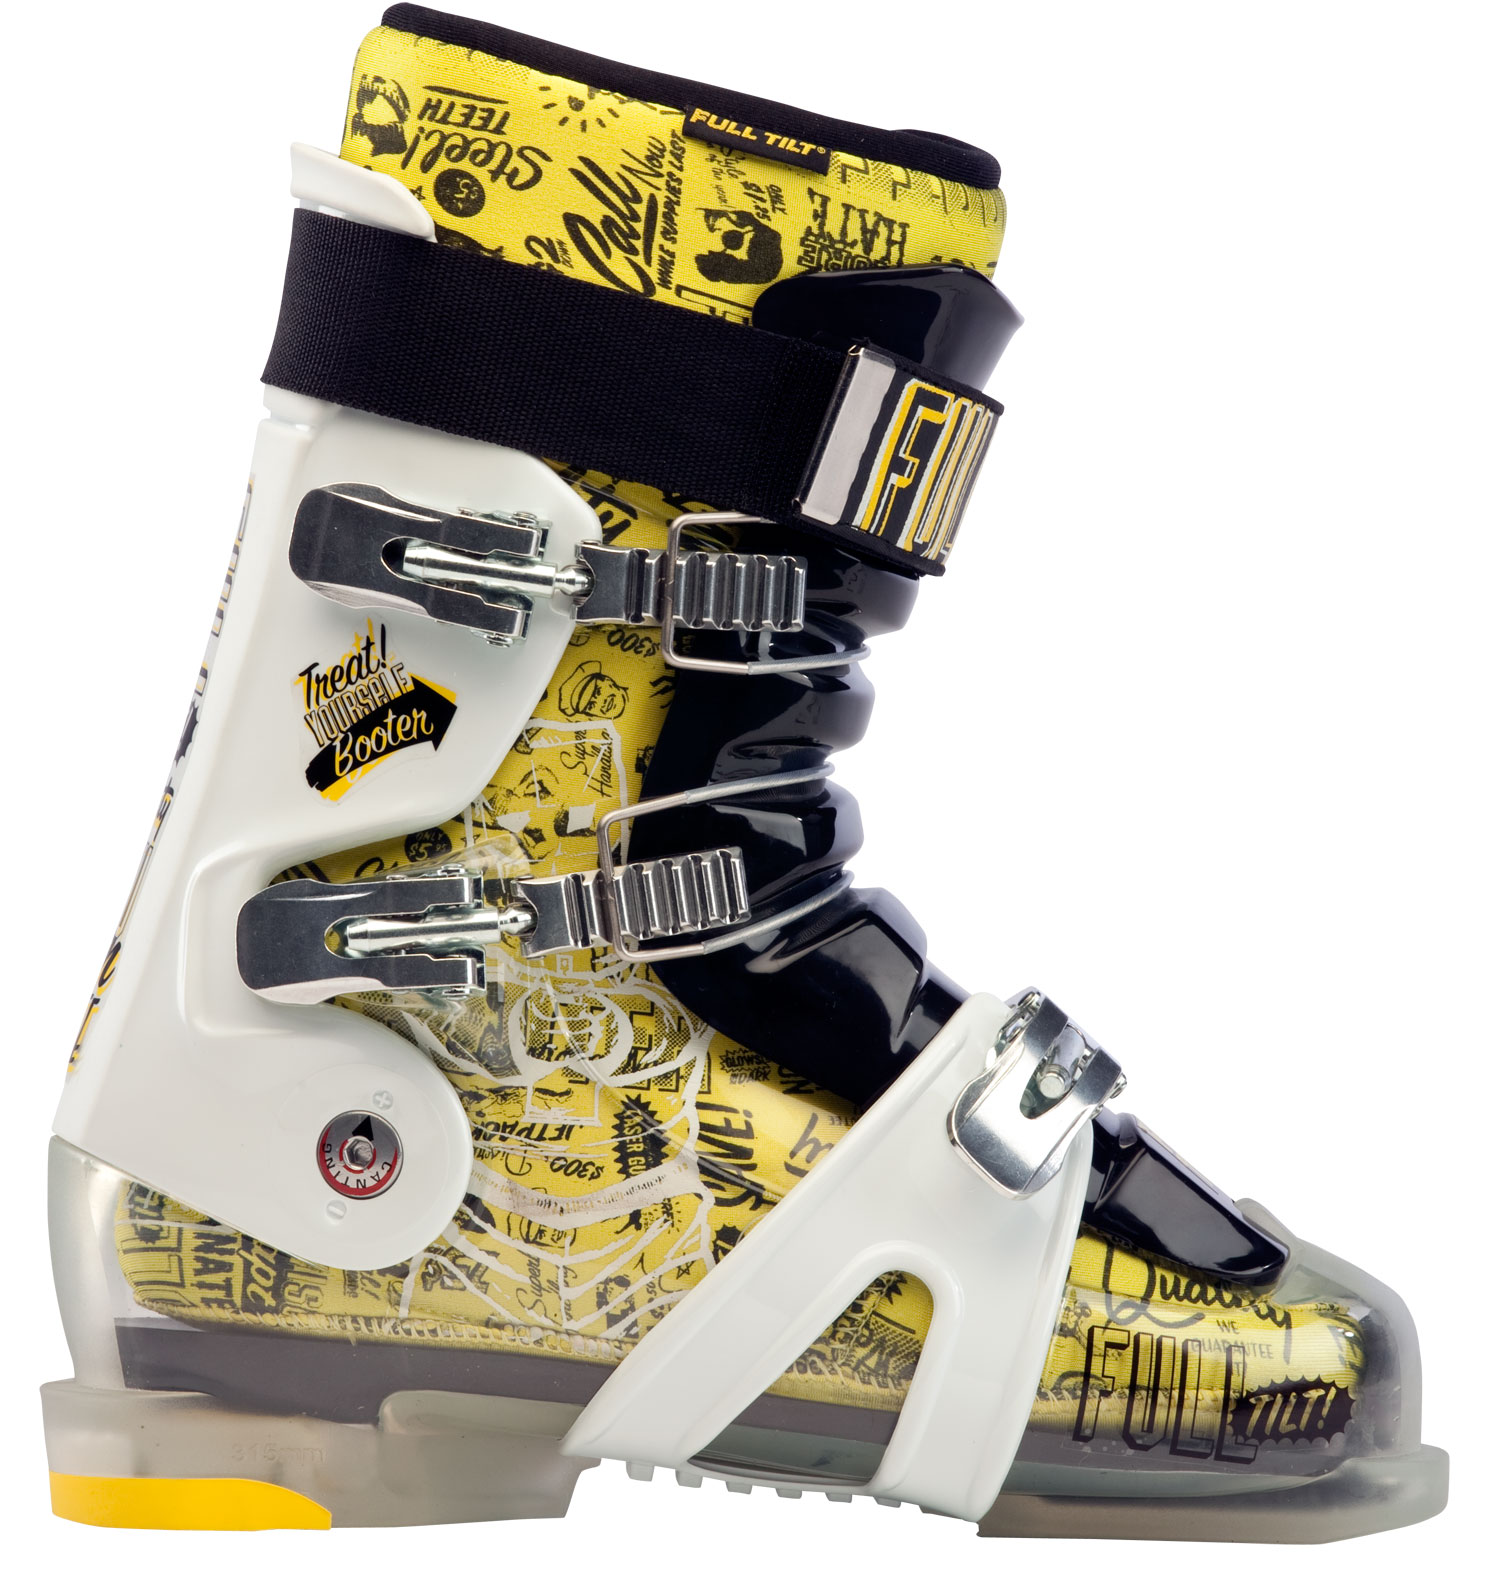 Ski Not all feet are made the same and Full Tilt Booter Ski Boots kept that in mind when attempting to make the perfect fitting ski boot. With a width space of 102 mm, this boot is a great choice for skiers with a wider foot who will be out on the slopes for the whole day. In addition, an Intuition foam liner and replaceable rubber sole helps greatly when it comes to molding the boot to fit each foot perfectly. The Full Tilt boot is a top choice for comfort and performance.Key Features of the Full Tilt Booter Ski Boots:  Shell: FTI Influence  Last Width: 102mm  Tongue (10 = Stiffest Flex : Interchangeable   5 Flex / 5 Ribs  Weight g (sizes M 27, W 25 : 1995  Foot Board: Active  Sole: Replaceable Rubber  Small Heel  Buckles: 3 Aluminum   Macro Ladder   Micro  Closure System: 2 Upper Cables   1 Lower Wrap Strap  Forward Cant Adjustment: n/a  Lateral Cant Adjustment: 3mm  Toe / Heal Height: 18.5mm / 34mm  Cuff: Free Hinging  Quickfit Liner Model: PERFORMER  Open Cell Foam: 4mm  Soft Density Intuition Foam: 2mm  Regular Density Intuition Foam: 7mm  High Density Intuition Foam:   Moldable Foam: Intuition   Wide Toe: Wide toe - $179.95